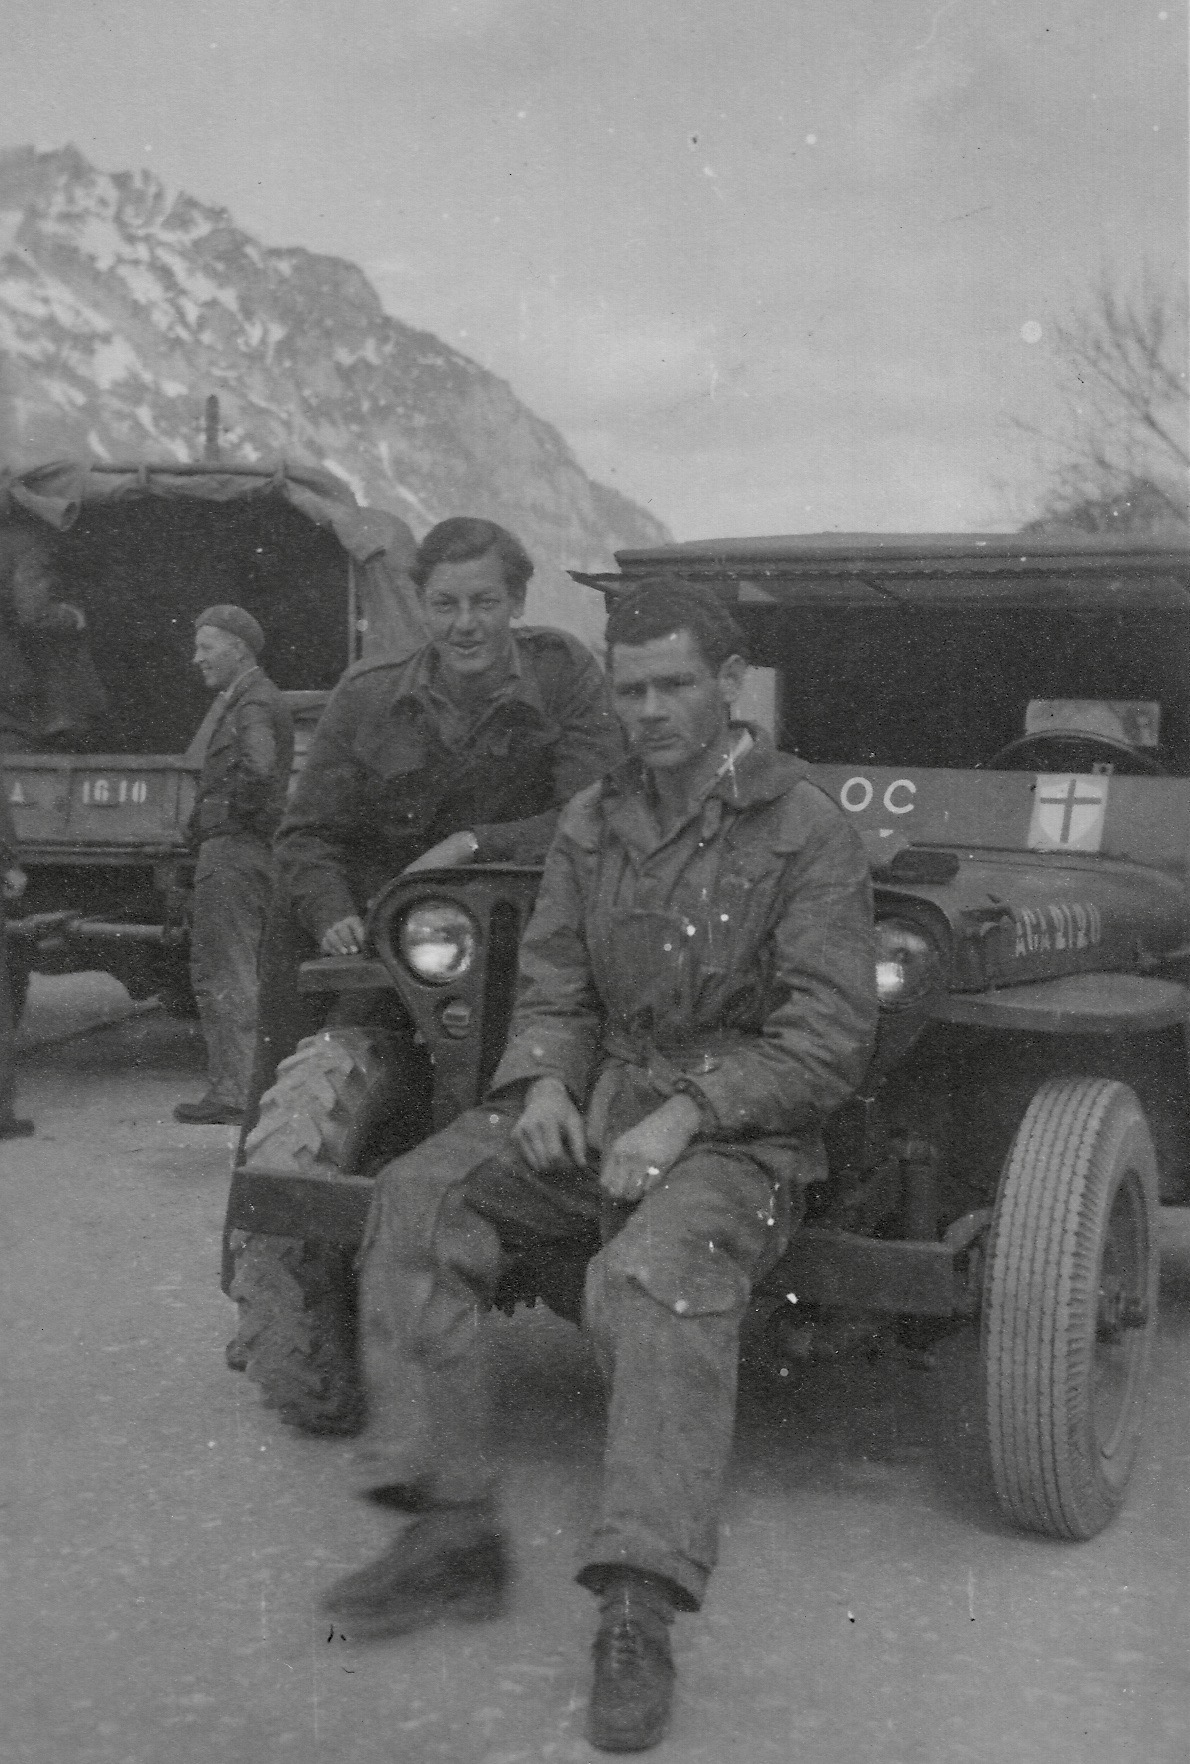 Eisenerz Displaced Persons Camp, Drivers Fritz, Slava & Neumor in background 1948